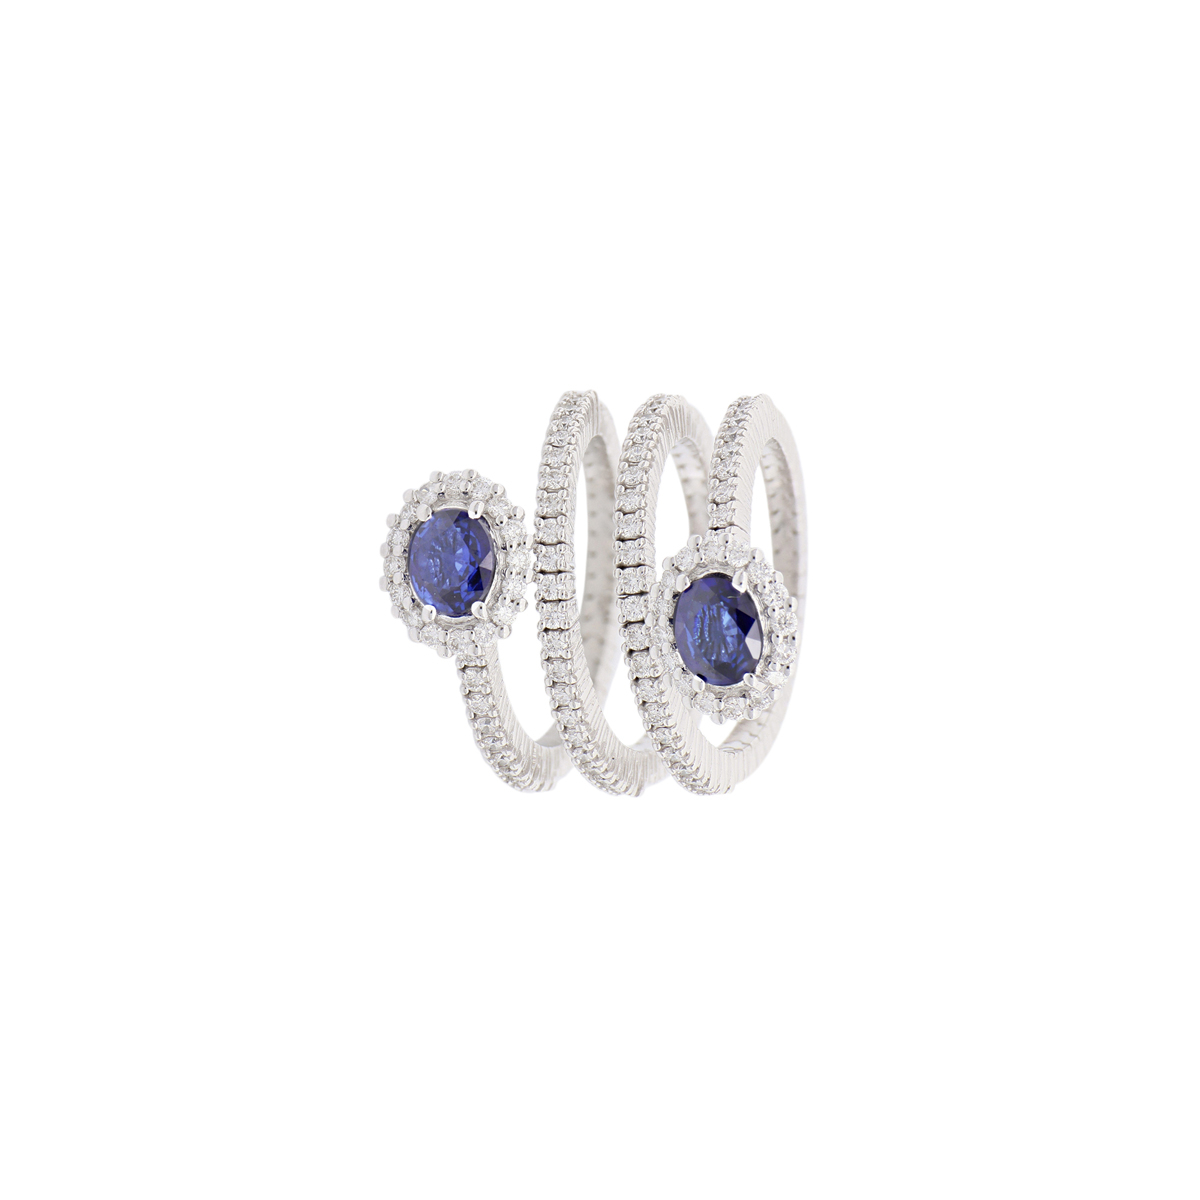 Oval Sapphire Spiral Ring with Diamonds